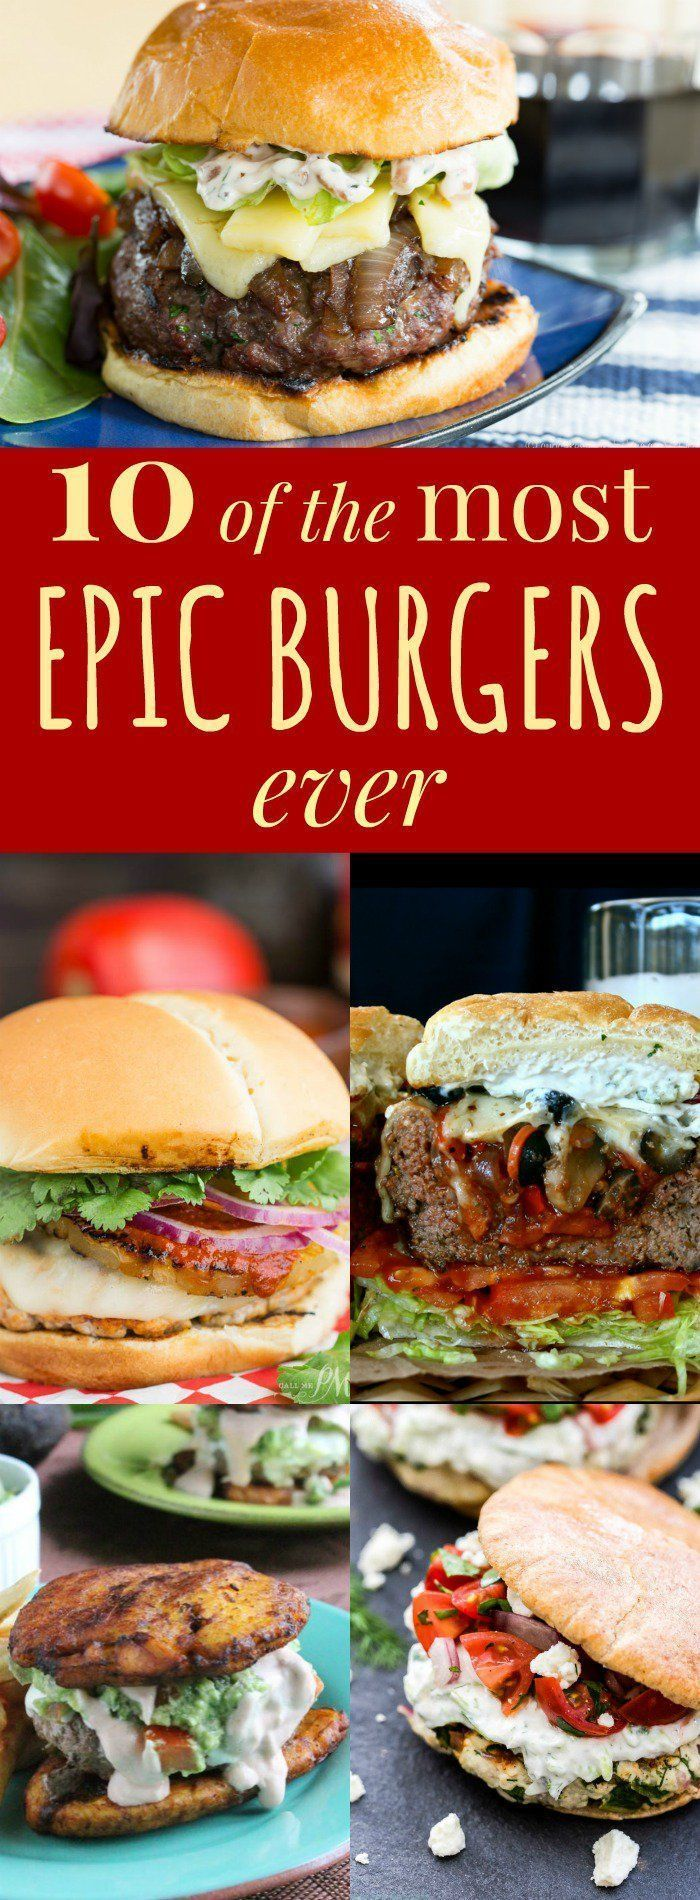 10 of the Most Epic Burgers Ever - beef, pork, chicken, or turkey, these hamburger recipes are the best!